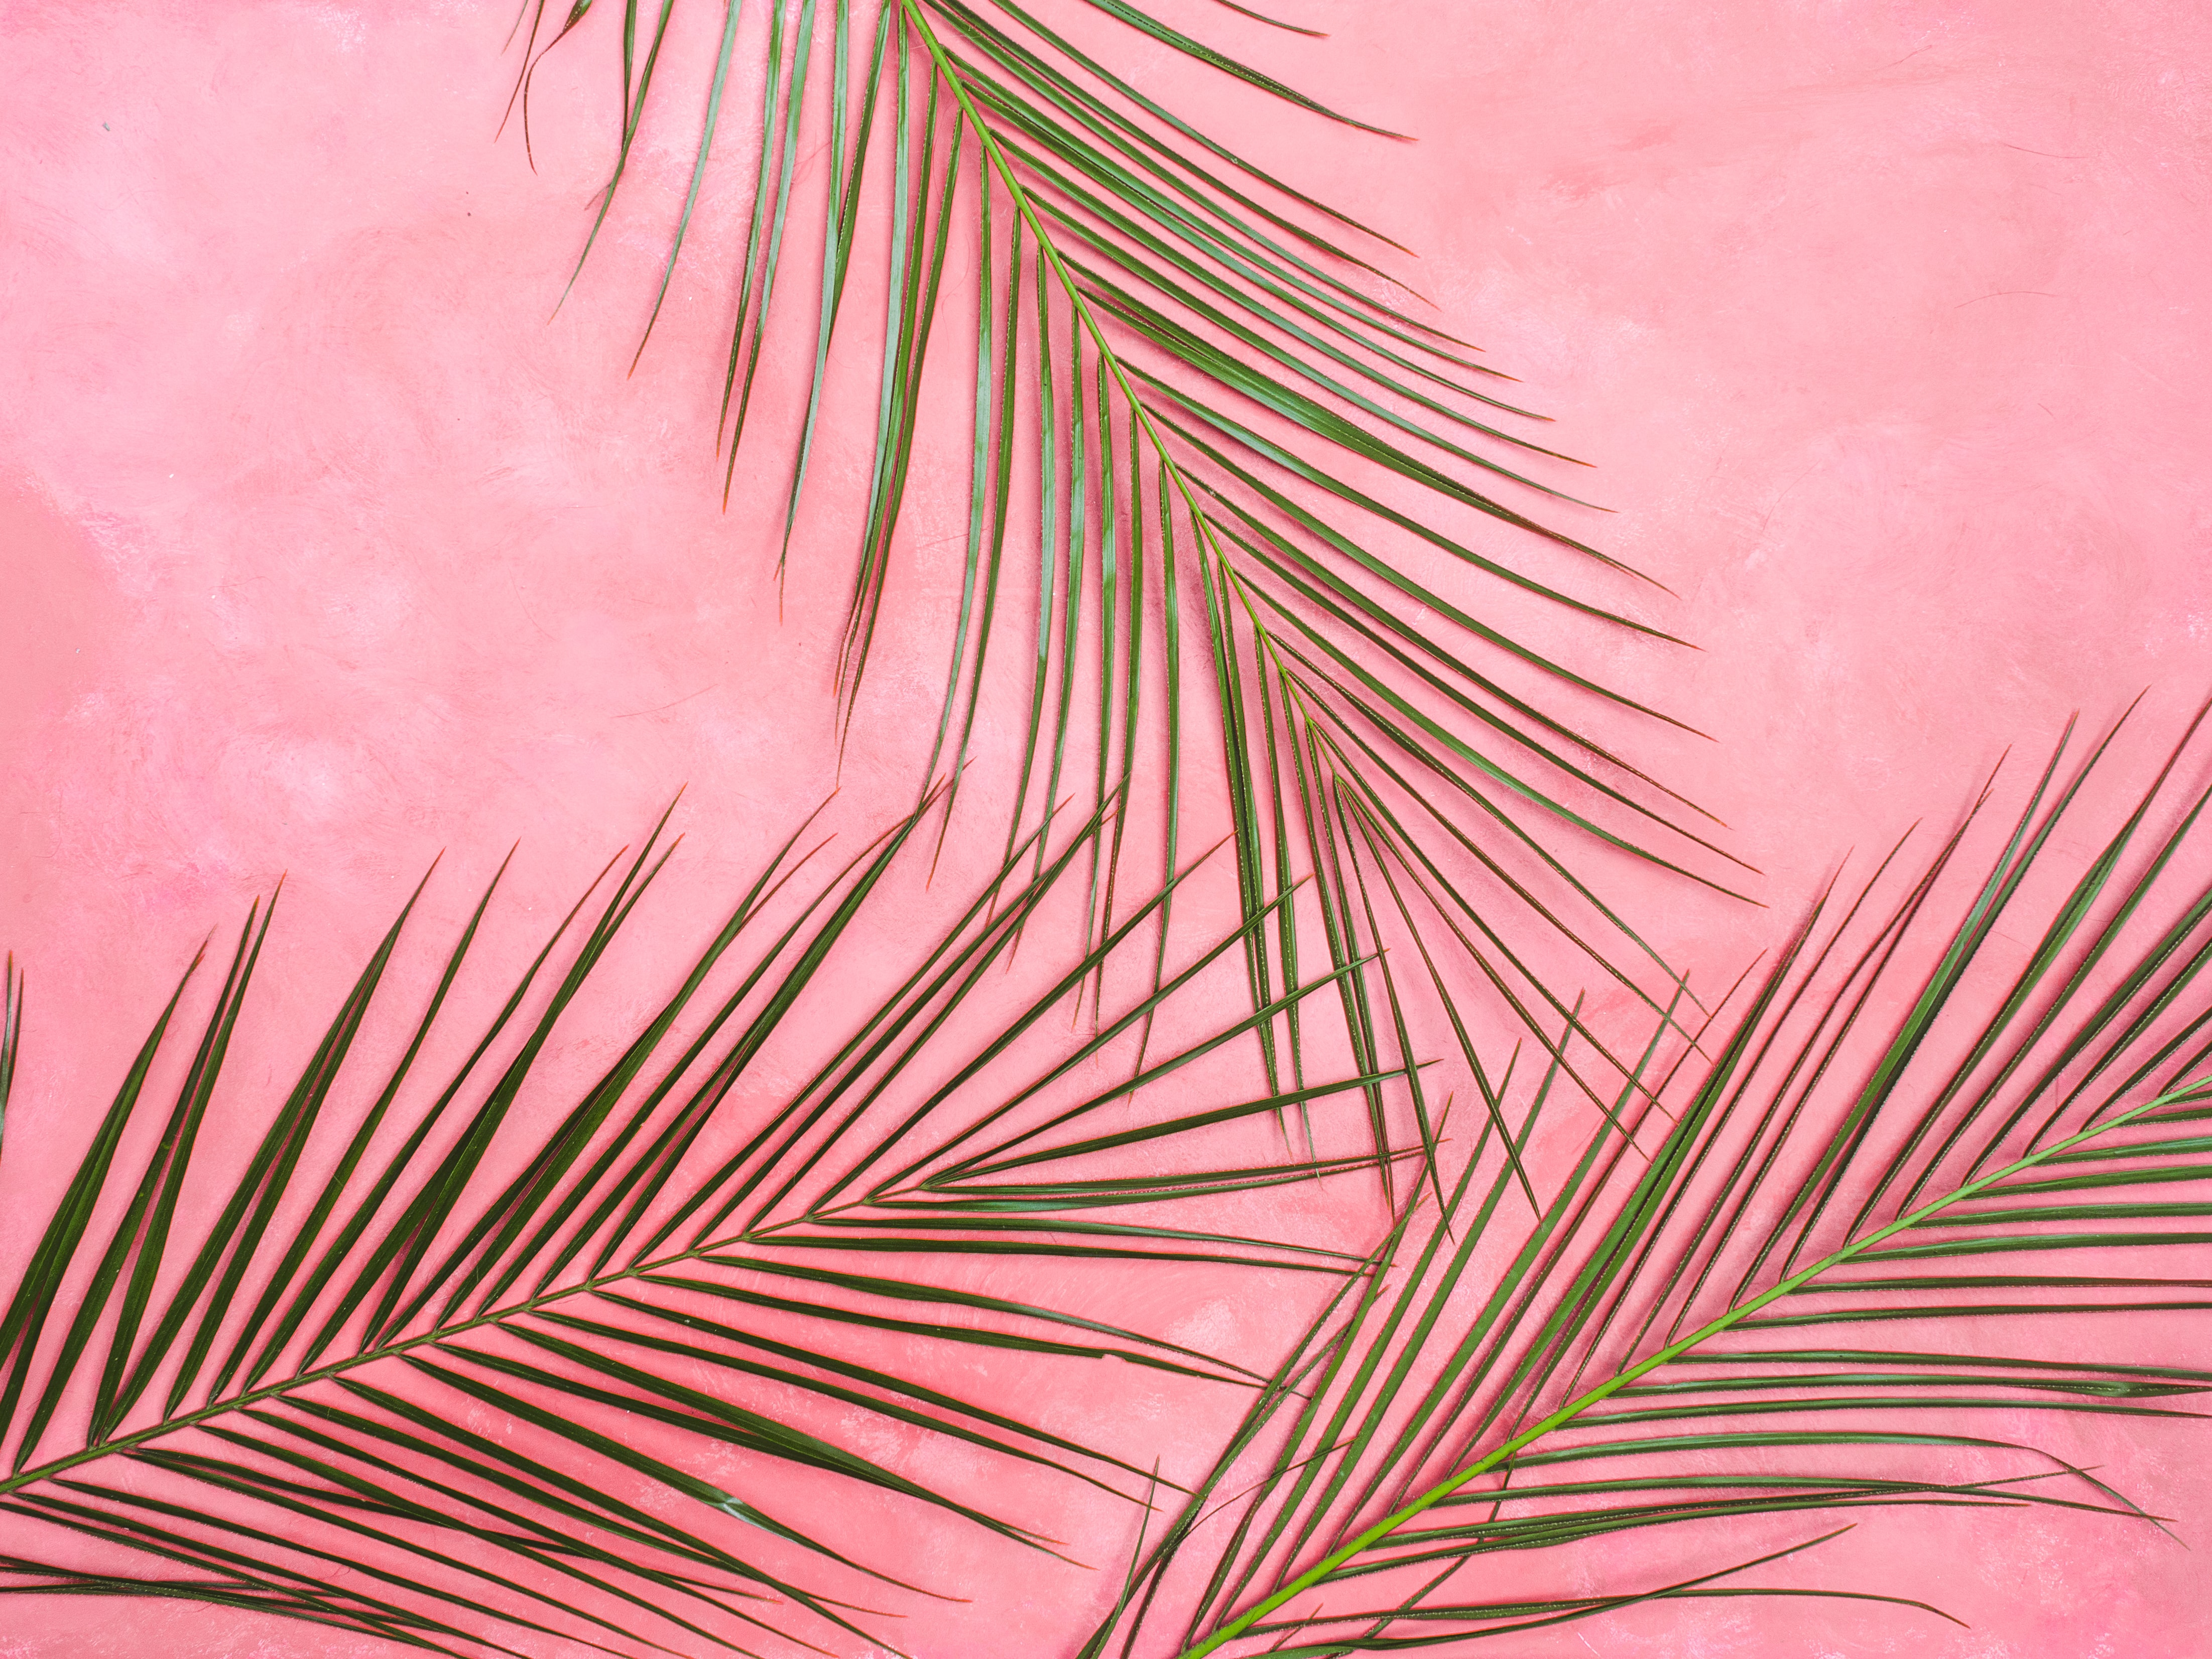 green palm leaves on pink surface